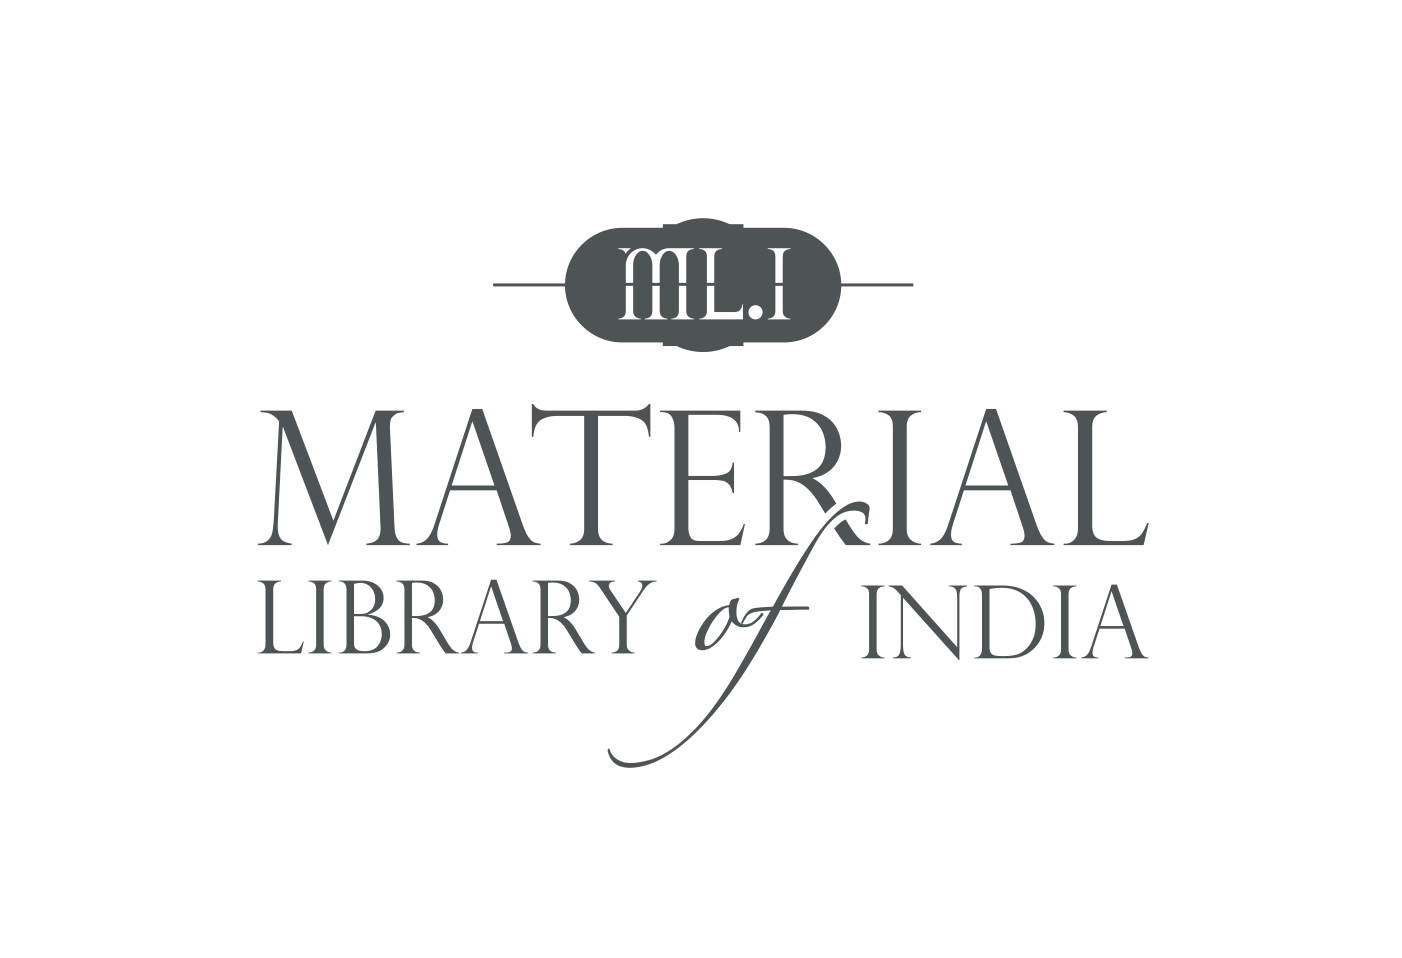 Material Library of India